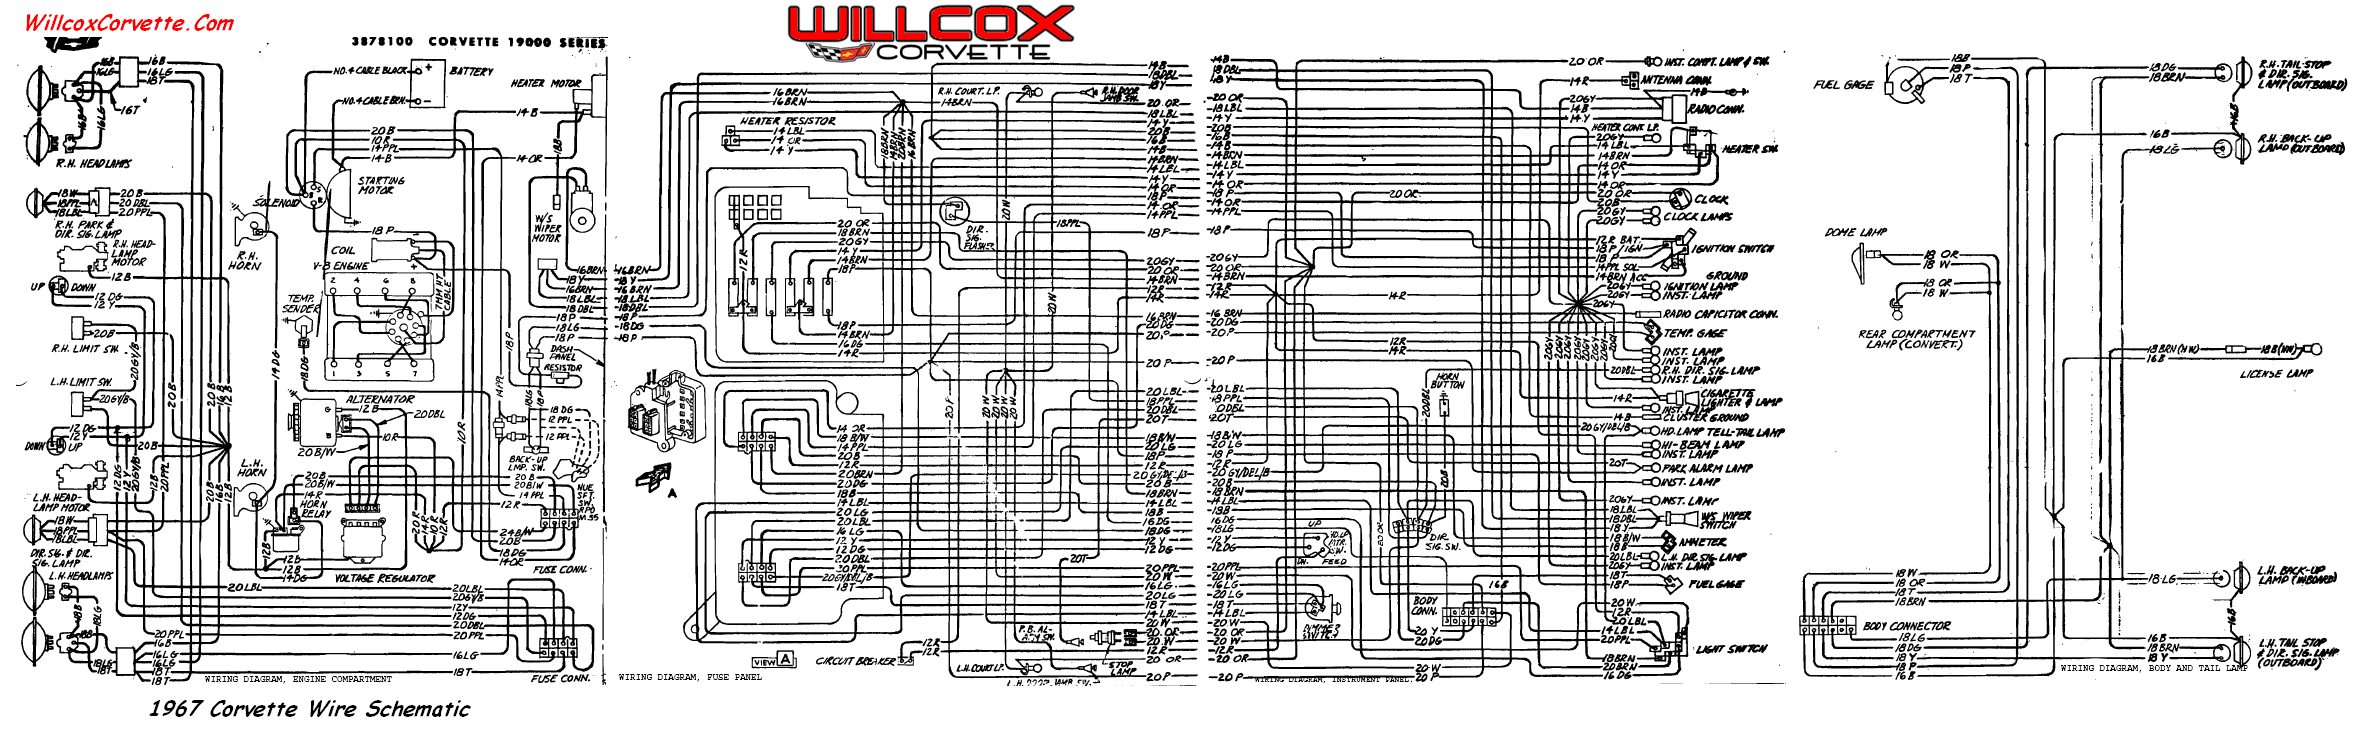 67 wire schematic for tracing wires 1967 corvette wiring diagram (tracer schematic) willcox corvette 1971 corvette wiring diagram at honlapkeszites.co